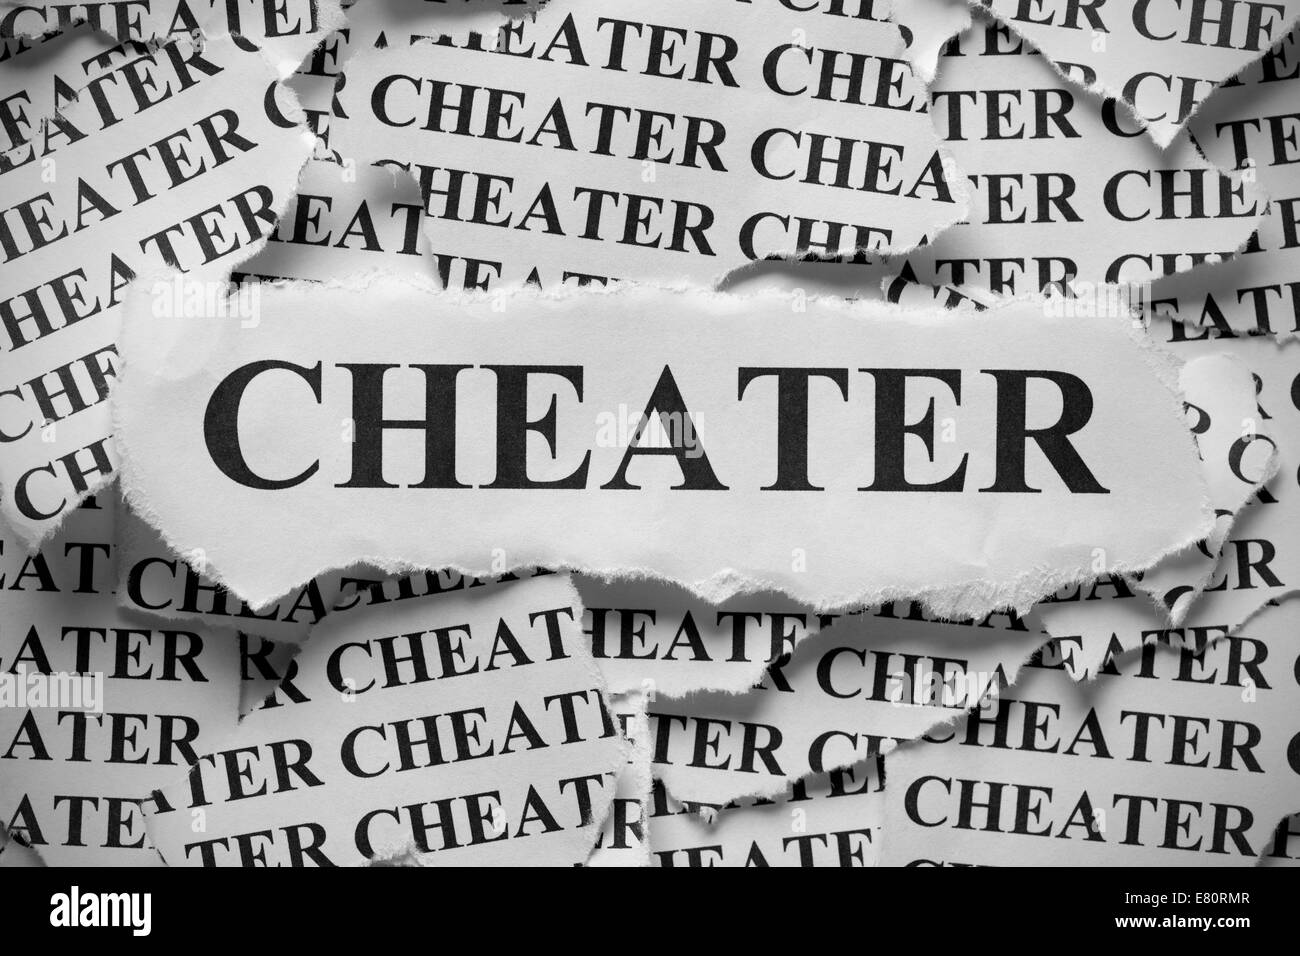 Torn pieces of paper with the word 'Cheater'. Black and White. Close-up. - Stock Image